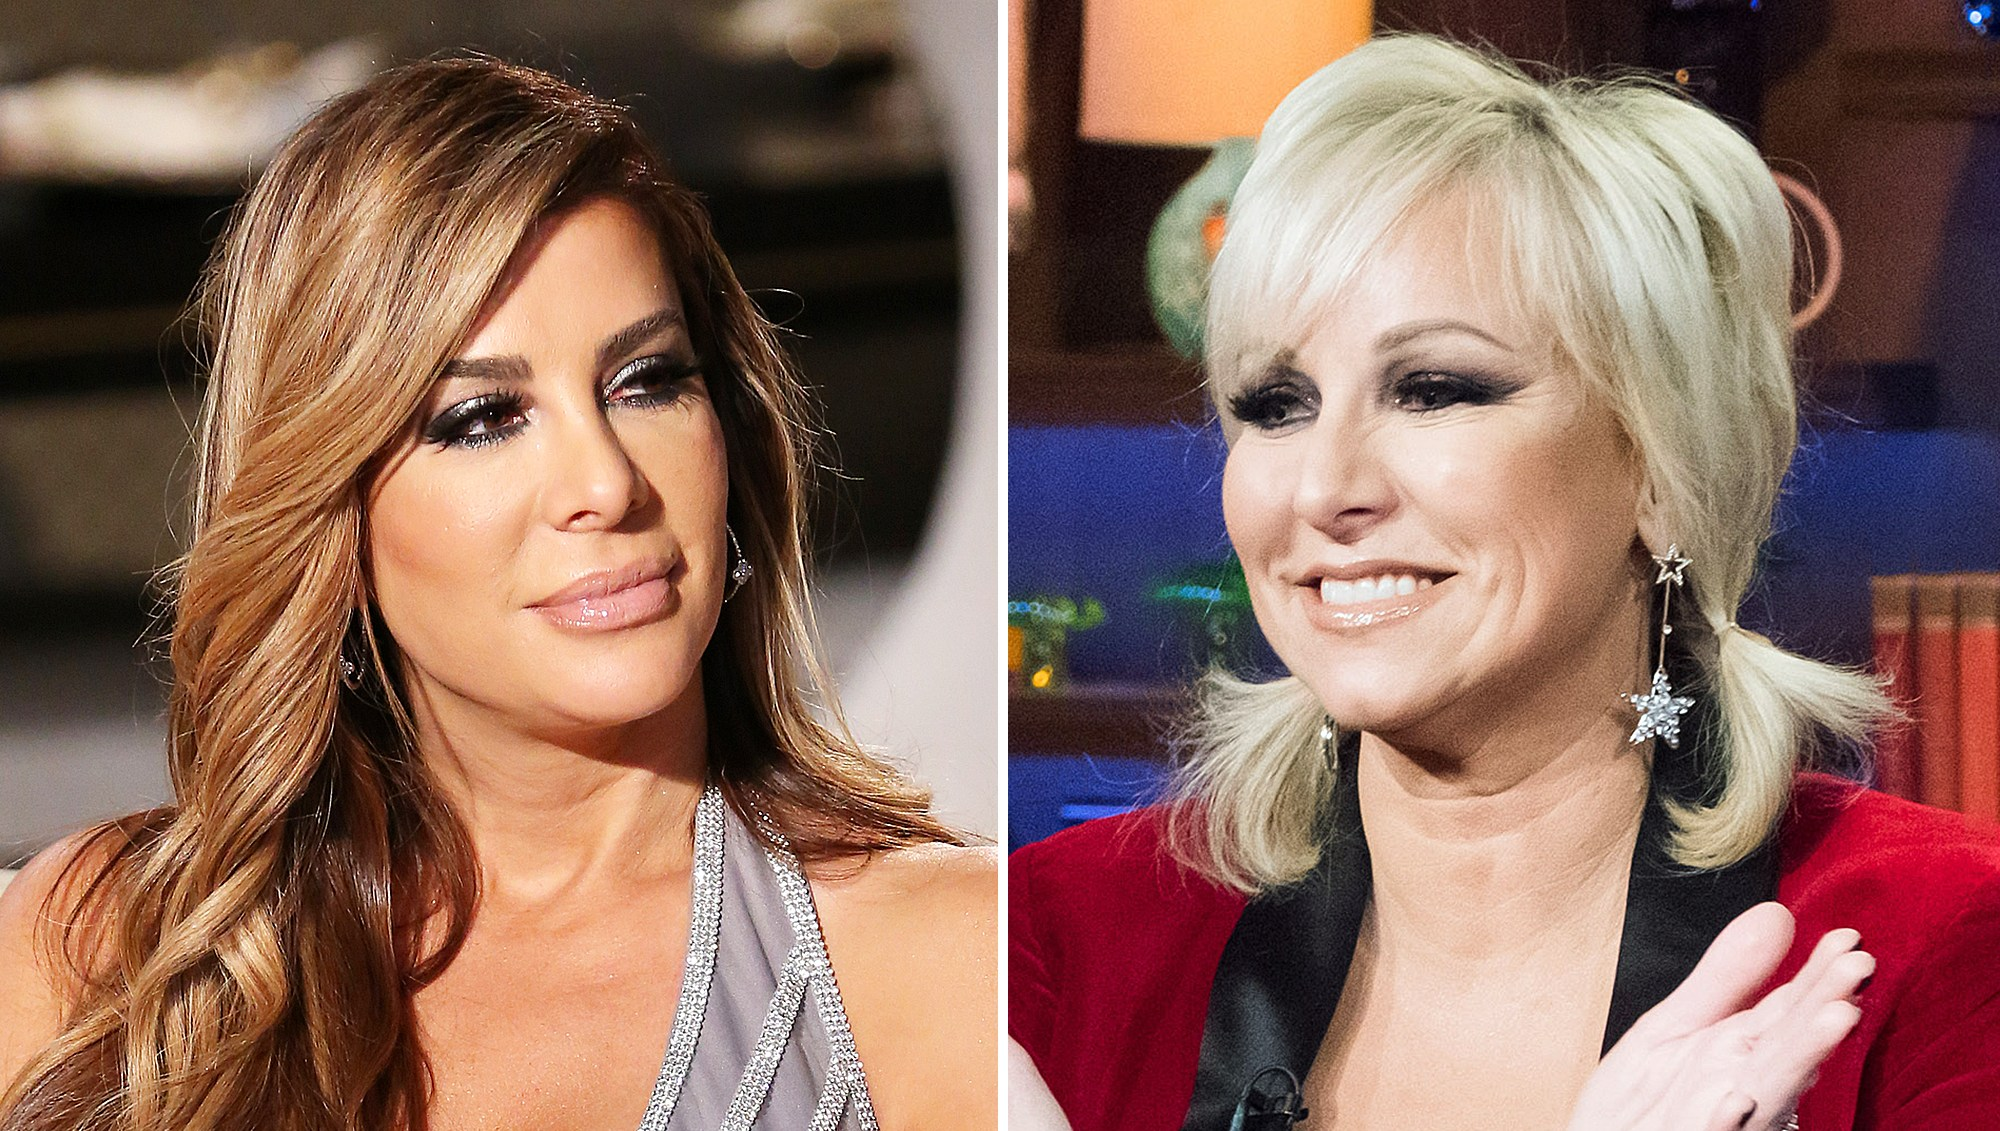 Siggy Flicker and Margaret Josephs